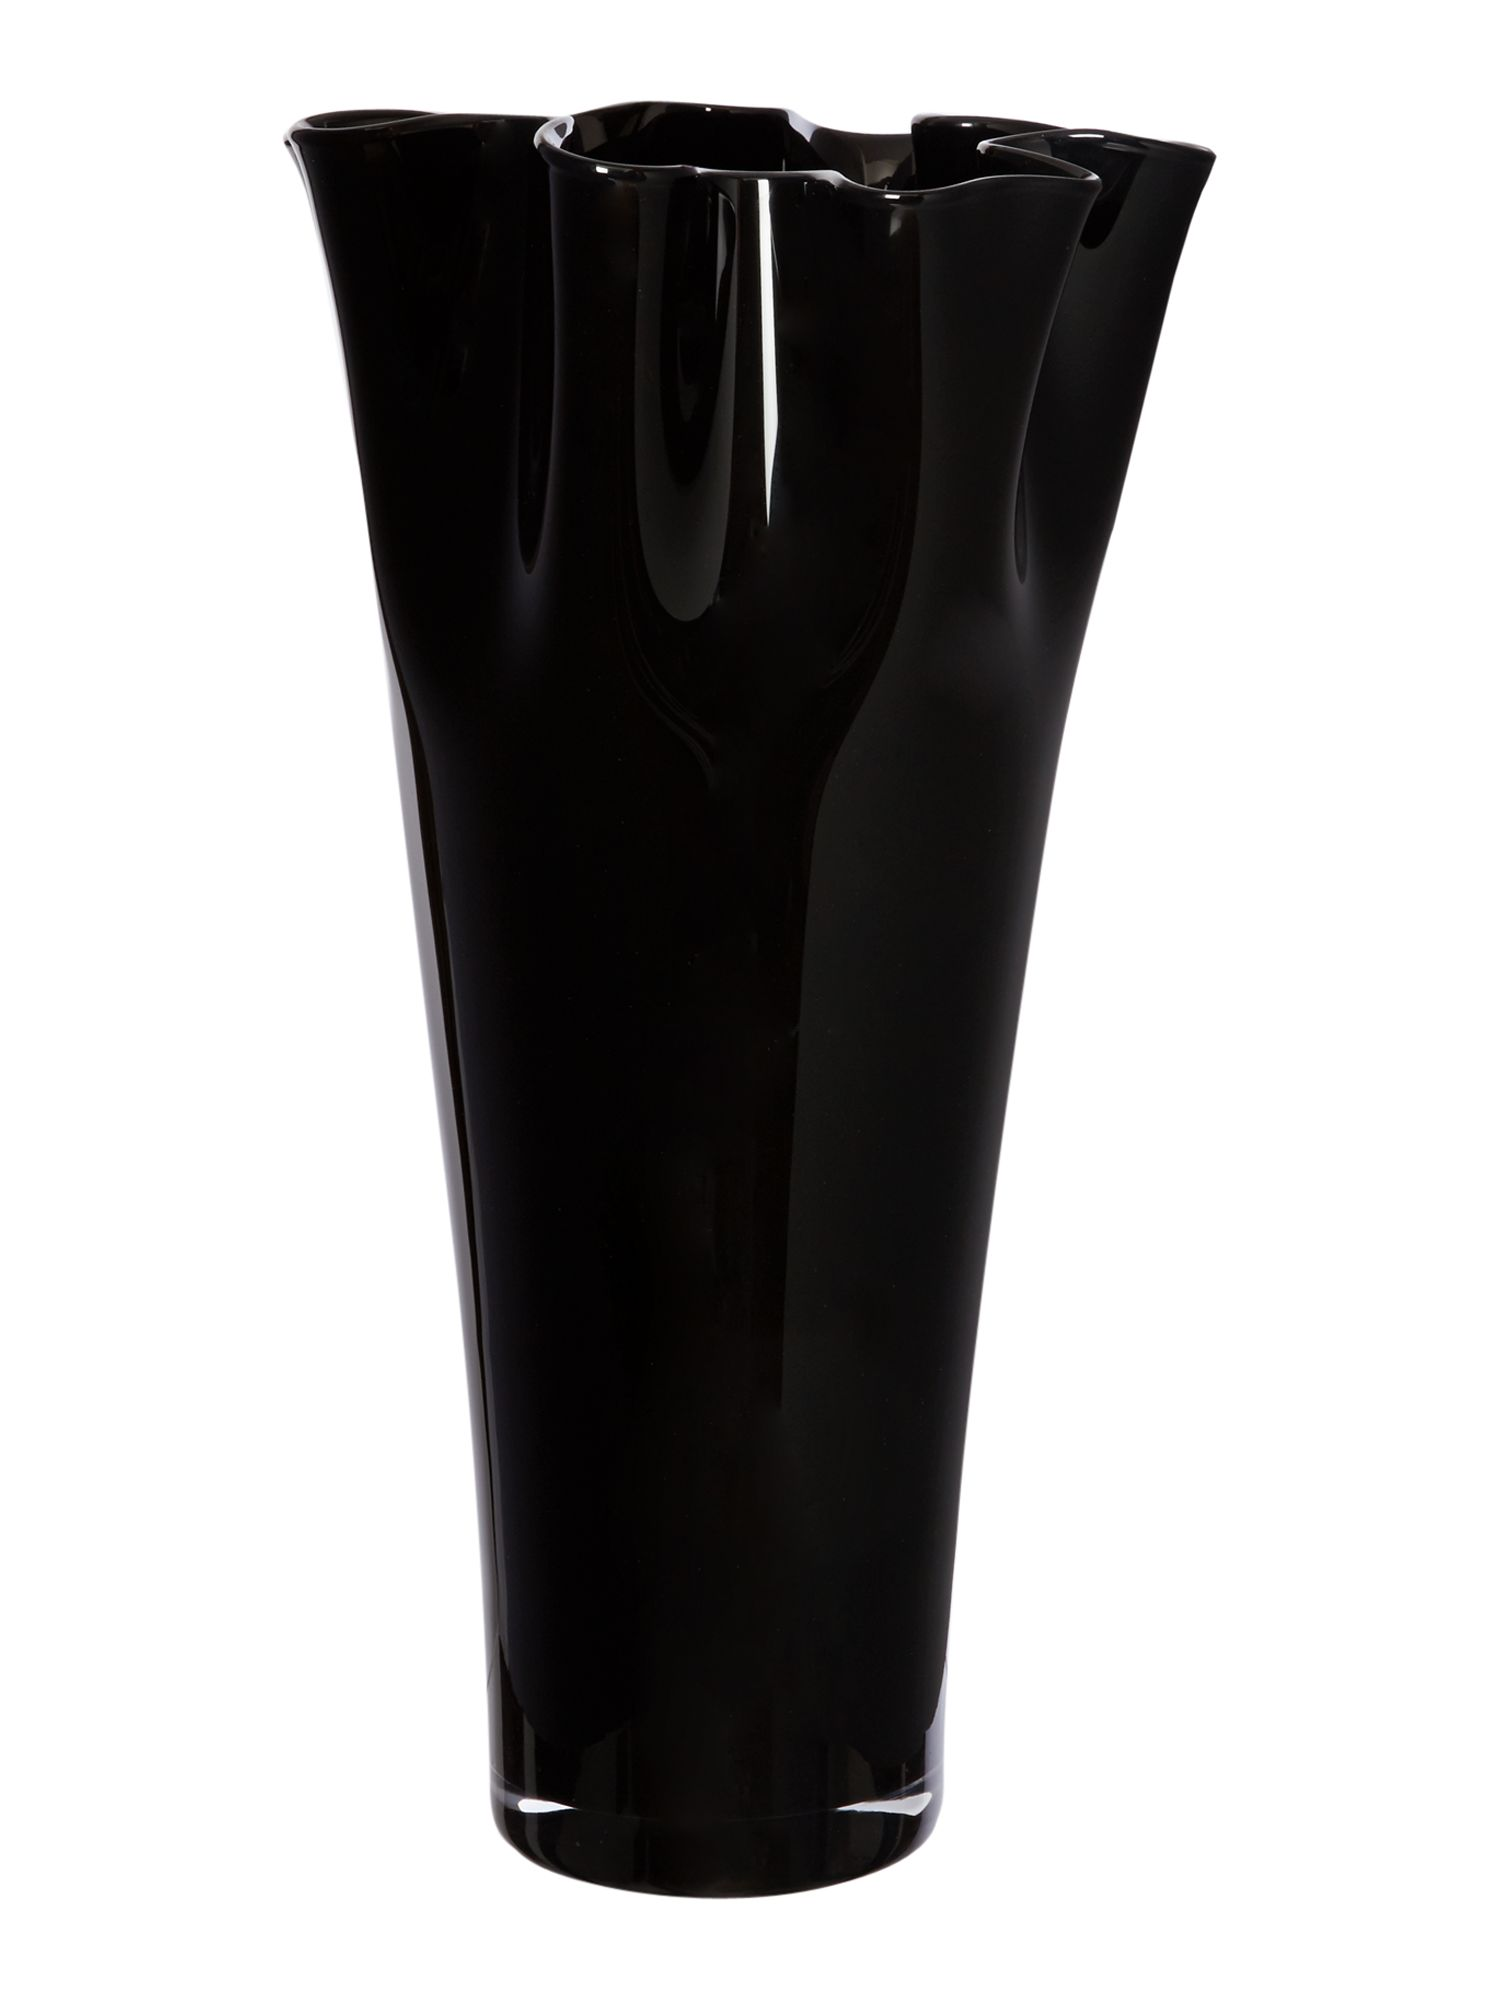 Large handkerchief vase, black